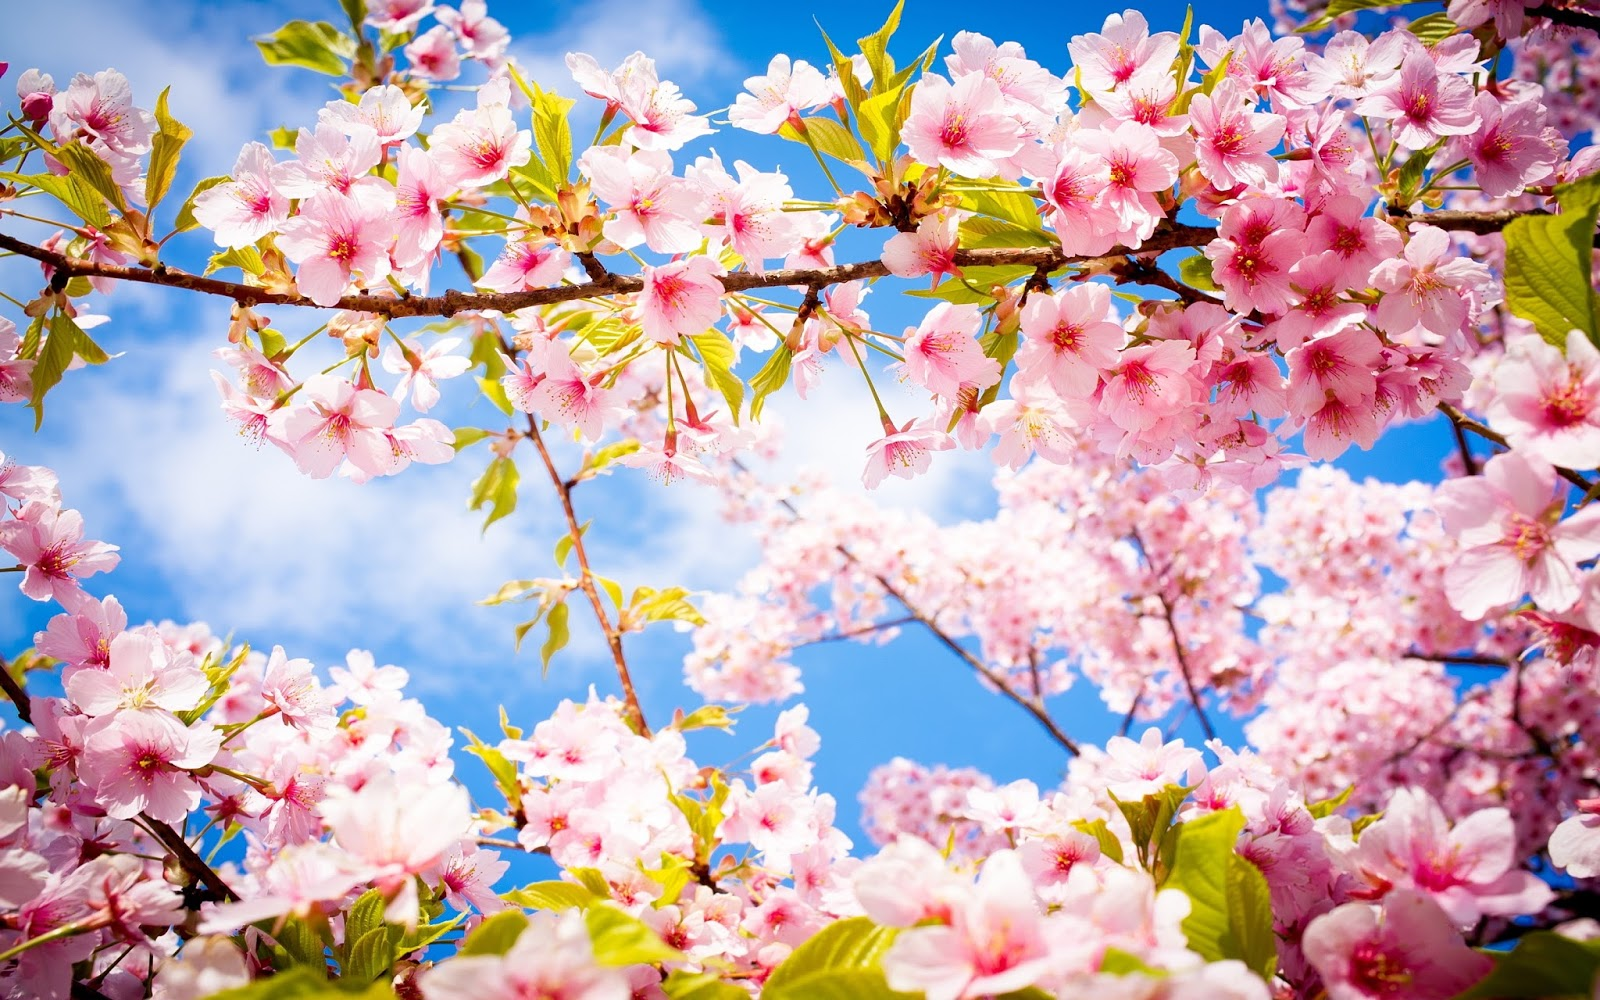 Popular   Wallpaper Home Screen Spring - Spring%2BHD%2BWallpapers%2B%25288%2529  Collection_4818.jpg